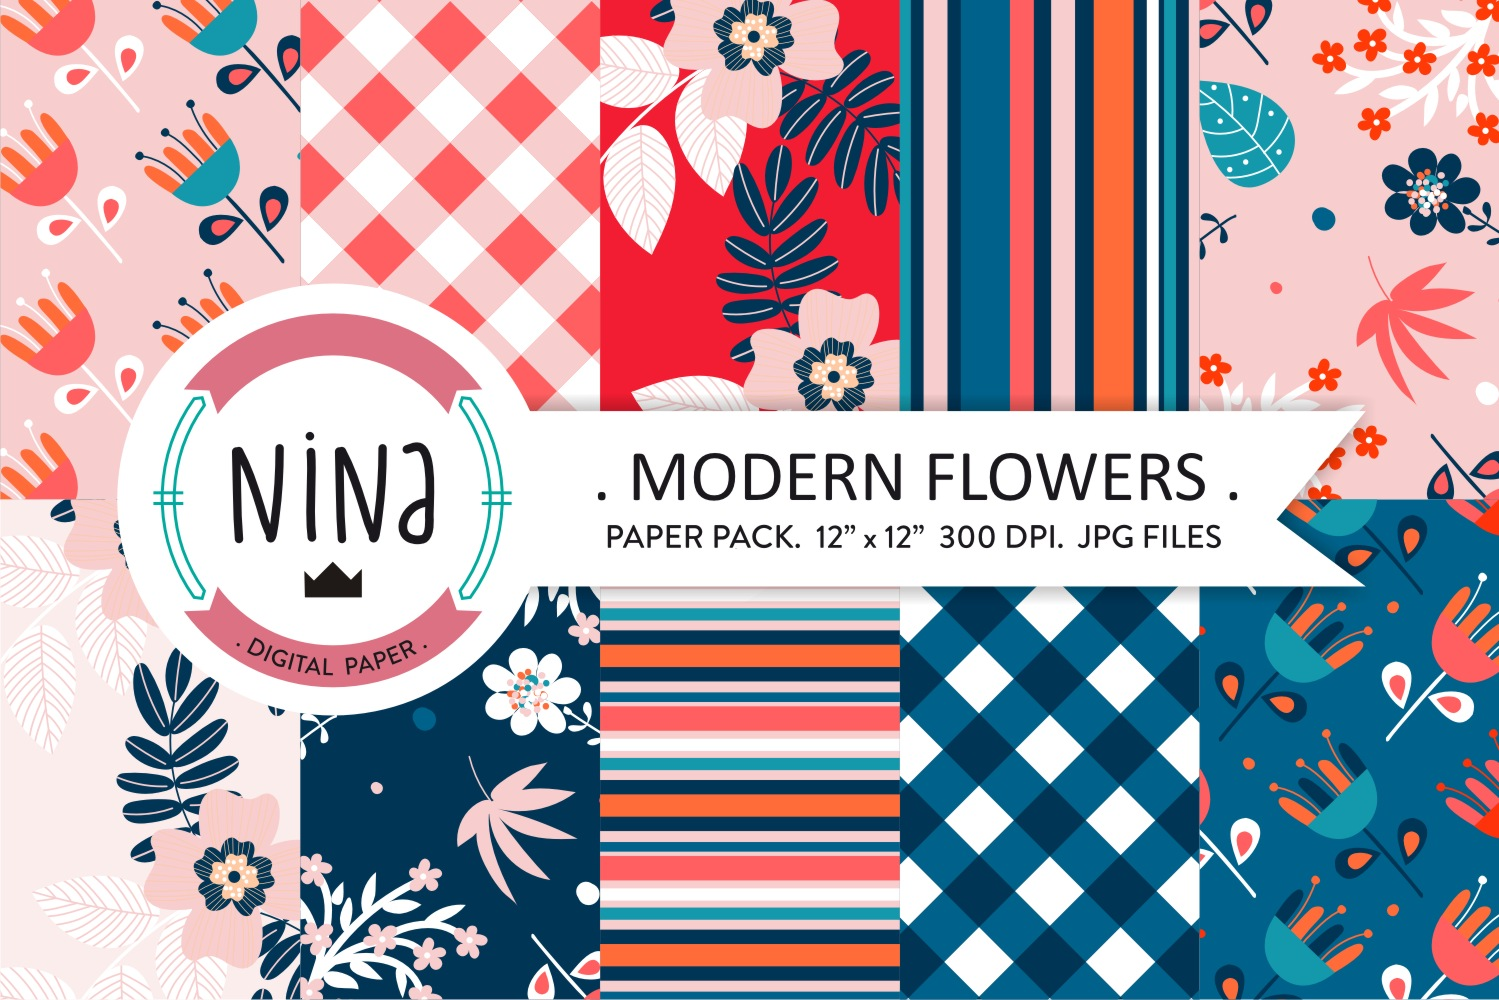 Download Free Modern Flower Digital Paper Floral Graphic By Nina Prints for Cricut Explore, Silhouette and other cutting machines.